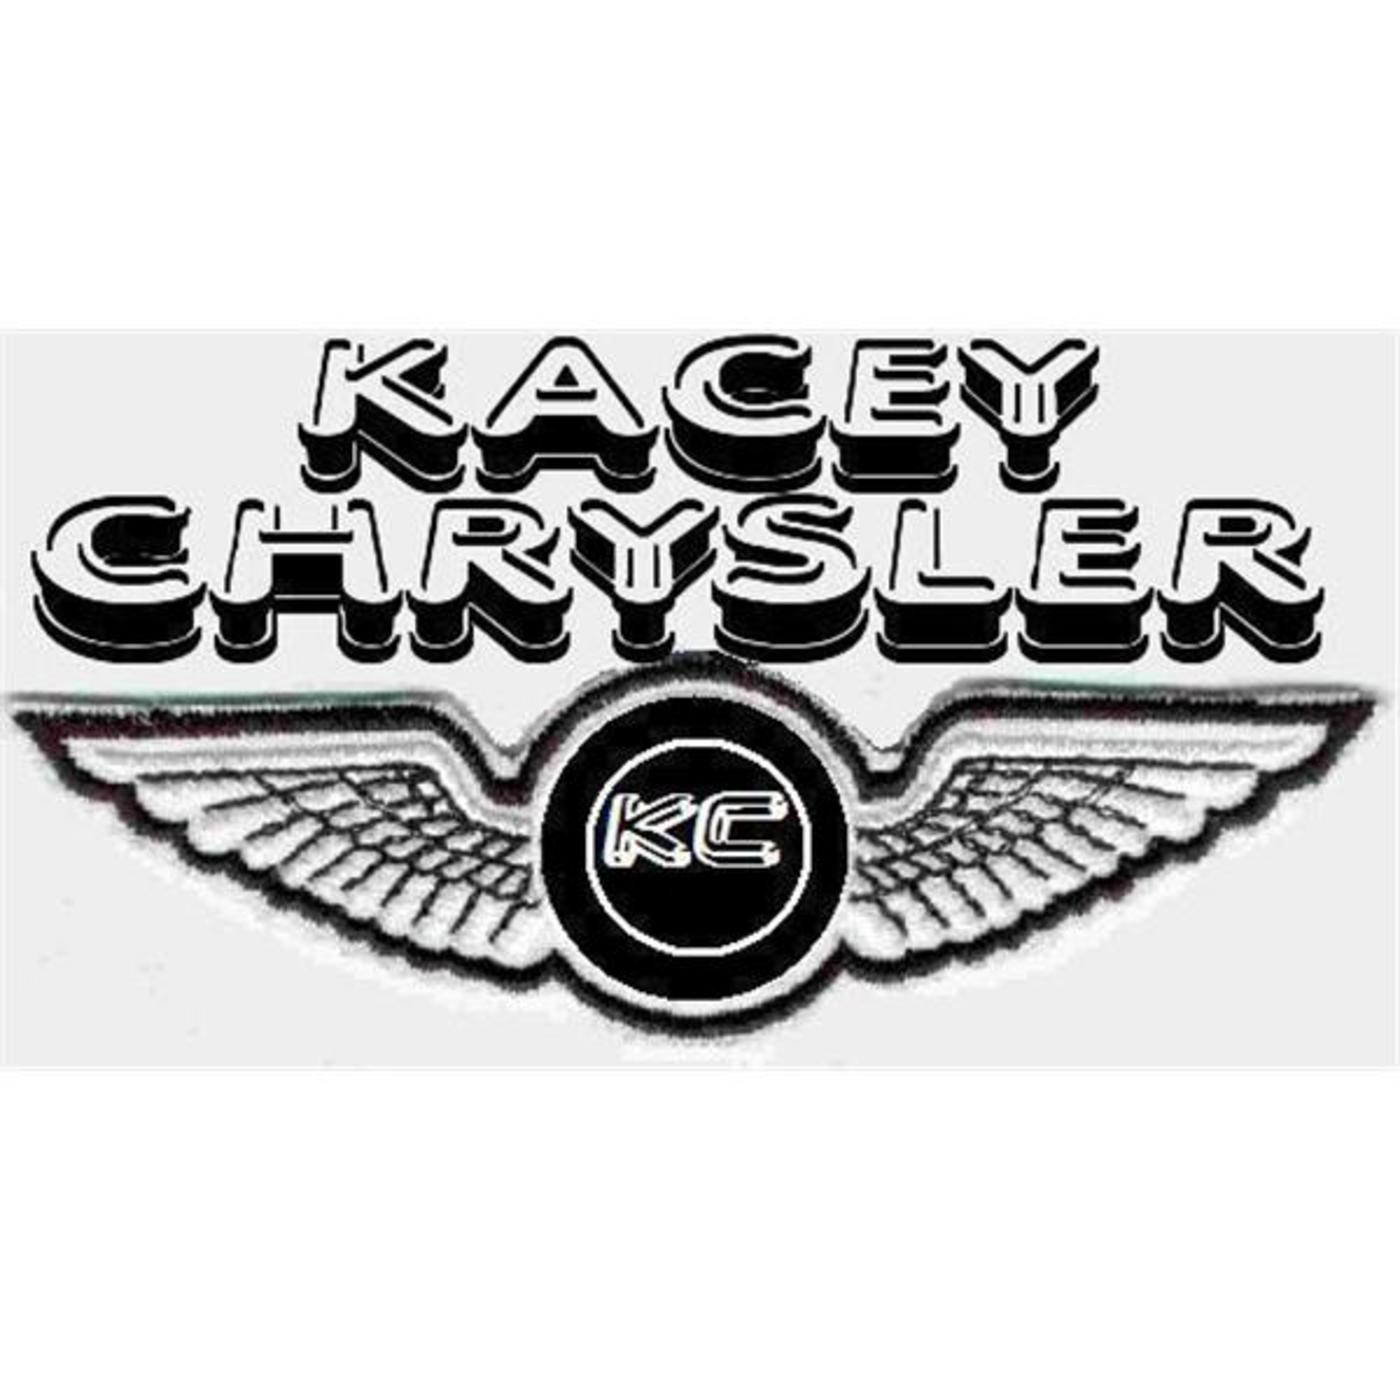 EMPIRE STATE RADIO | KACEY CHRYSLER